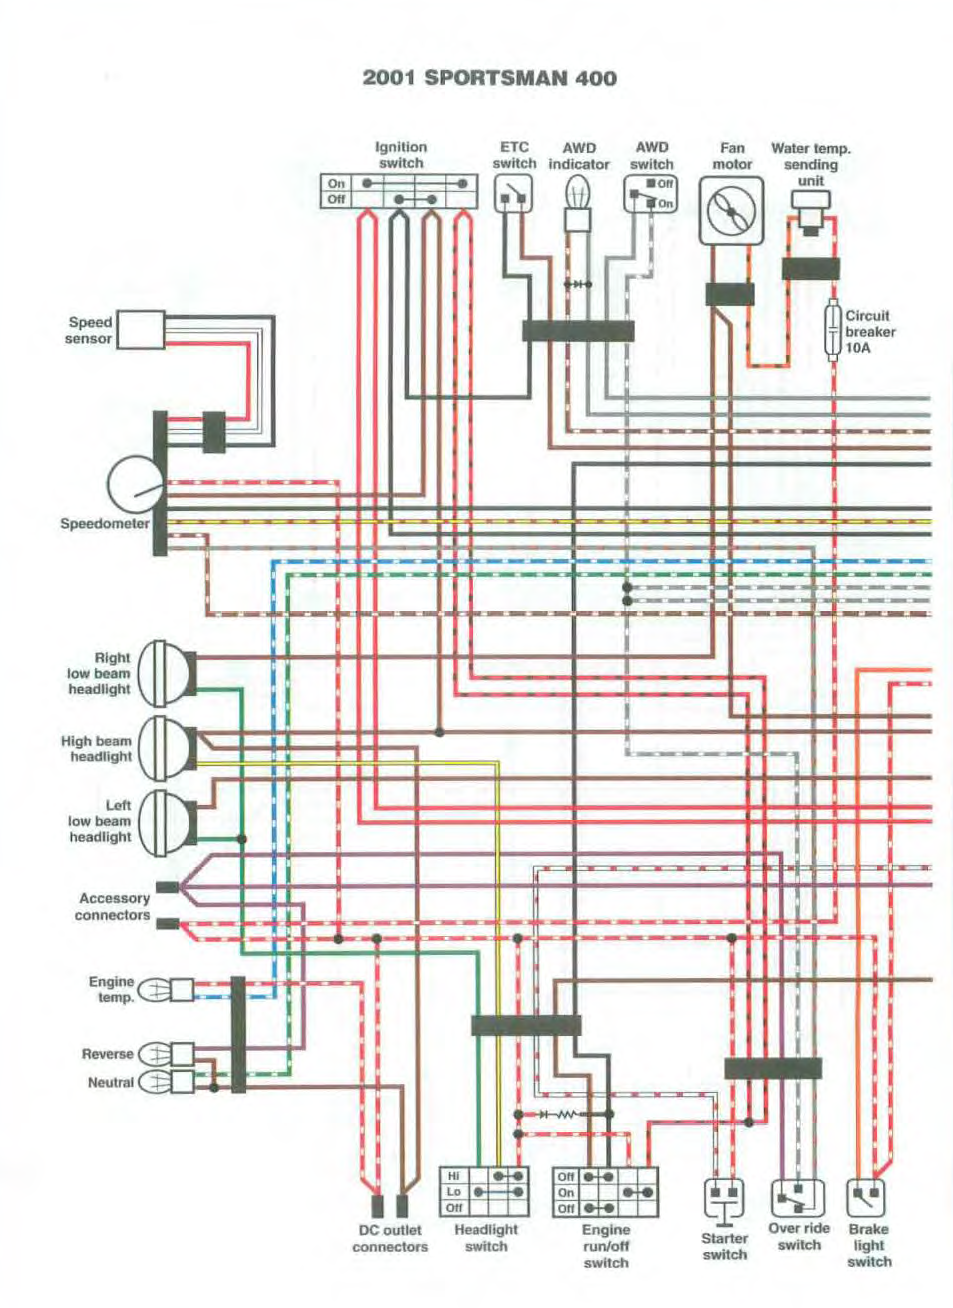 DIAGRAM] Polaris 500 Ho Wiring Diagram FULL Version HD Quality Wiring  Diagram - FEMMEDIAGRAM36S.RITMICAVCO.IT  Ritmicavco.it